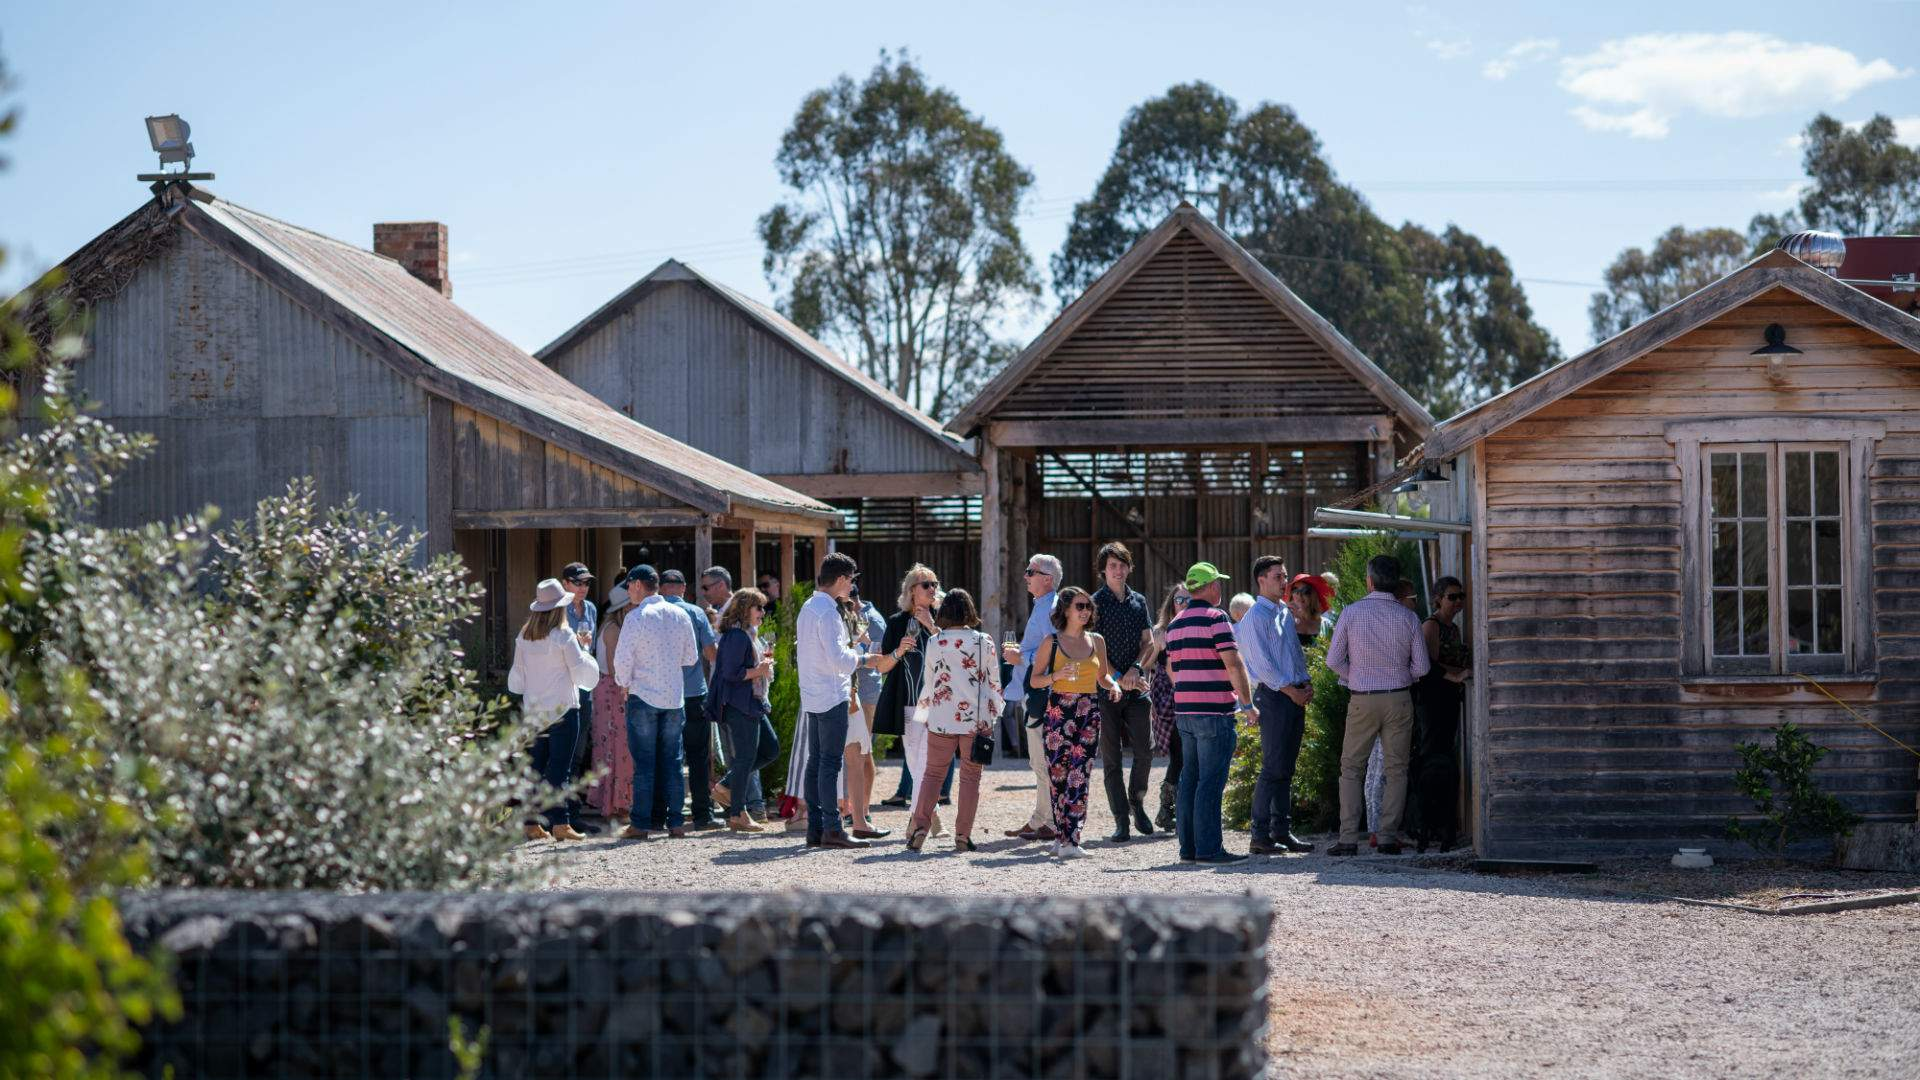 NSW Cellar Doors Where You Can Spend an Afternoon Drinking Wine